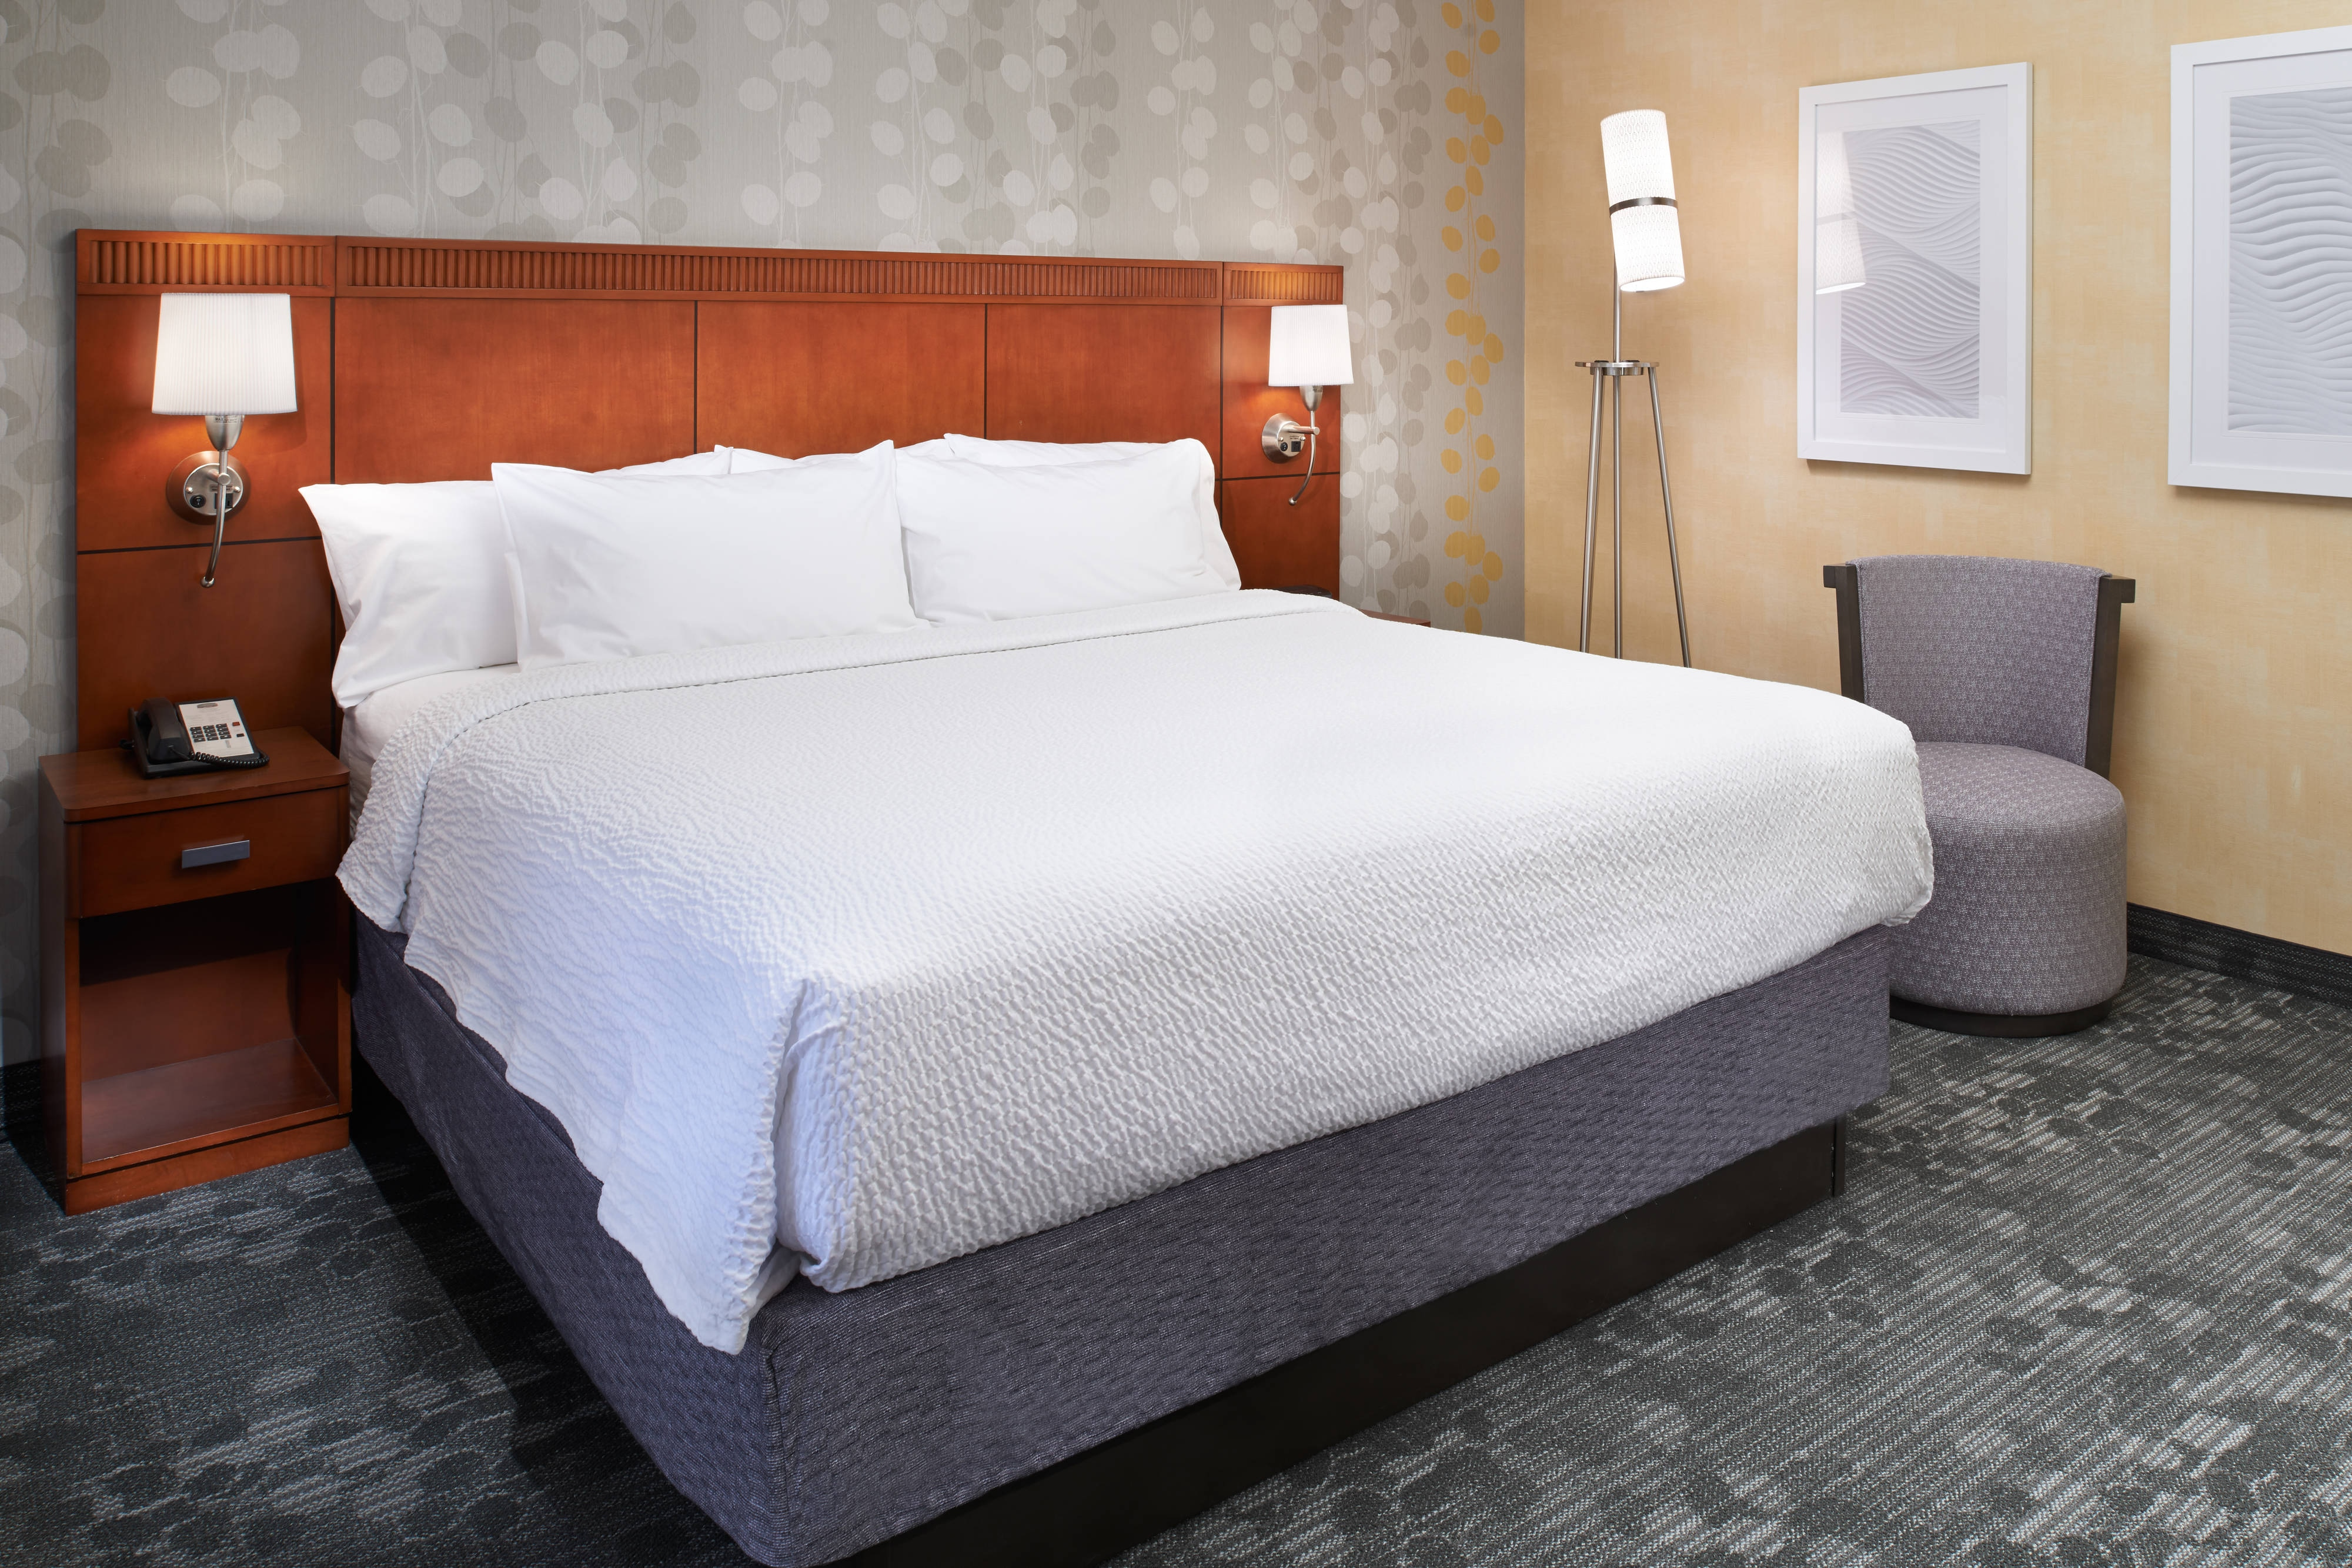 express tech cheap holiday in hotel rooms hotels holidayinnexpress warren gm inn hoteldetail dttex room us ctr ihg detroit by en